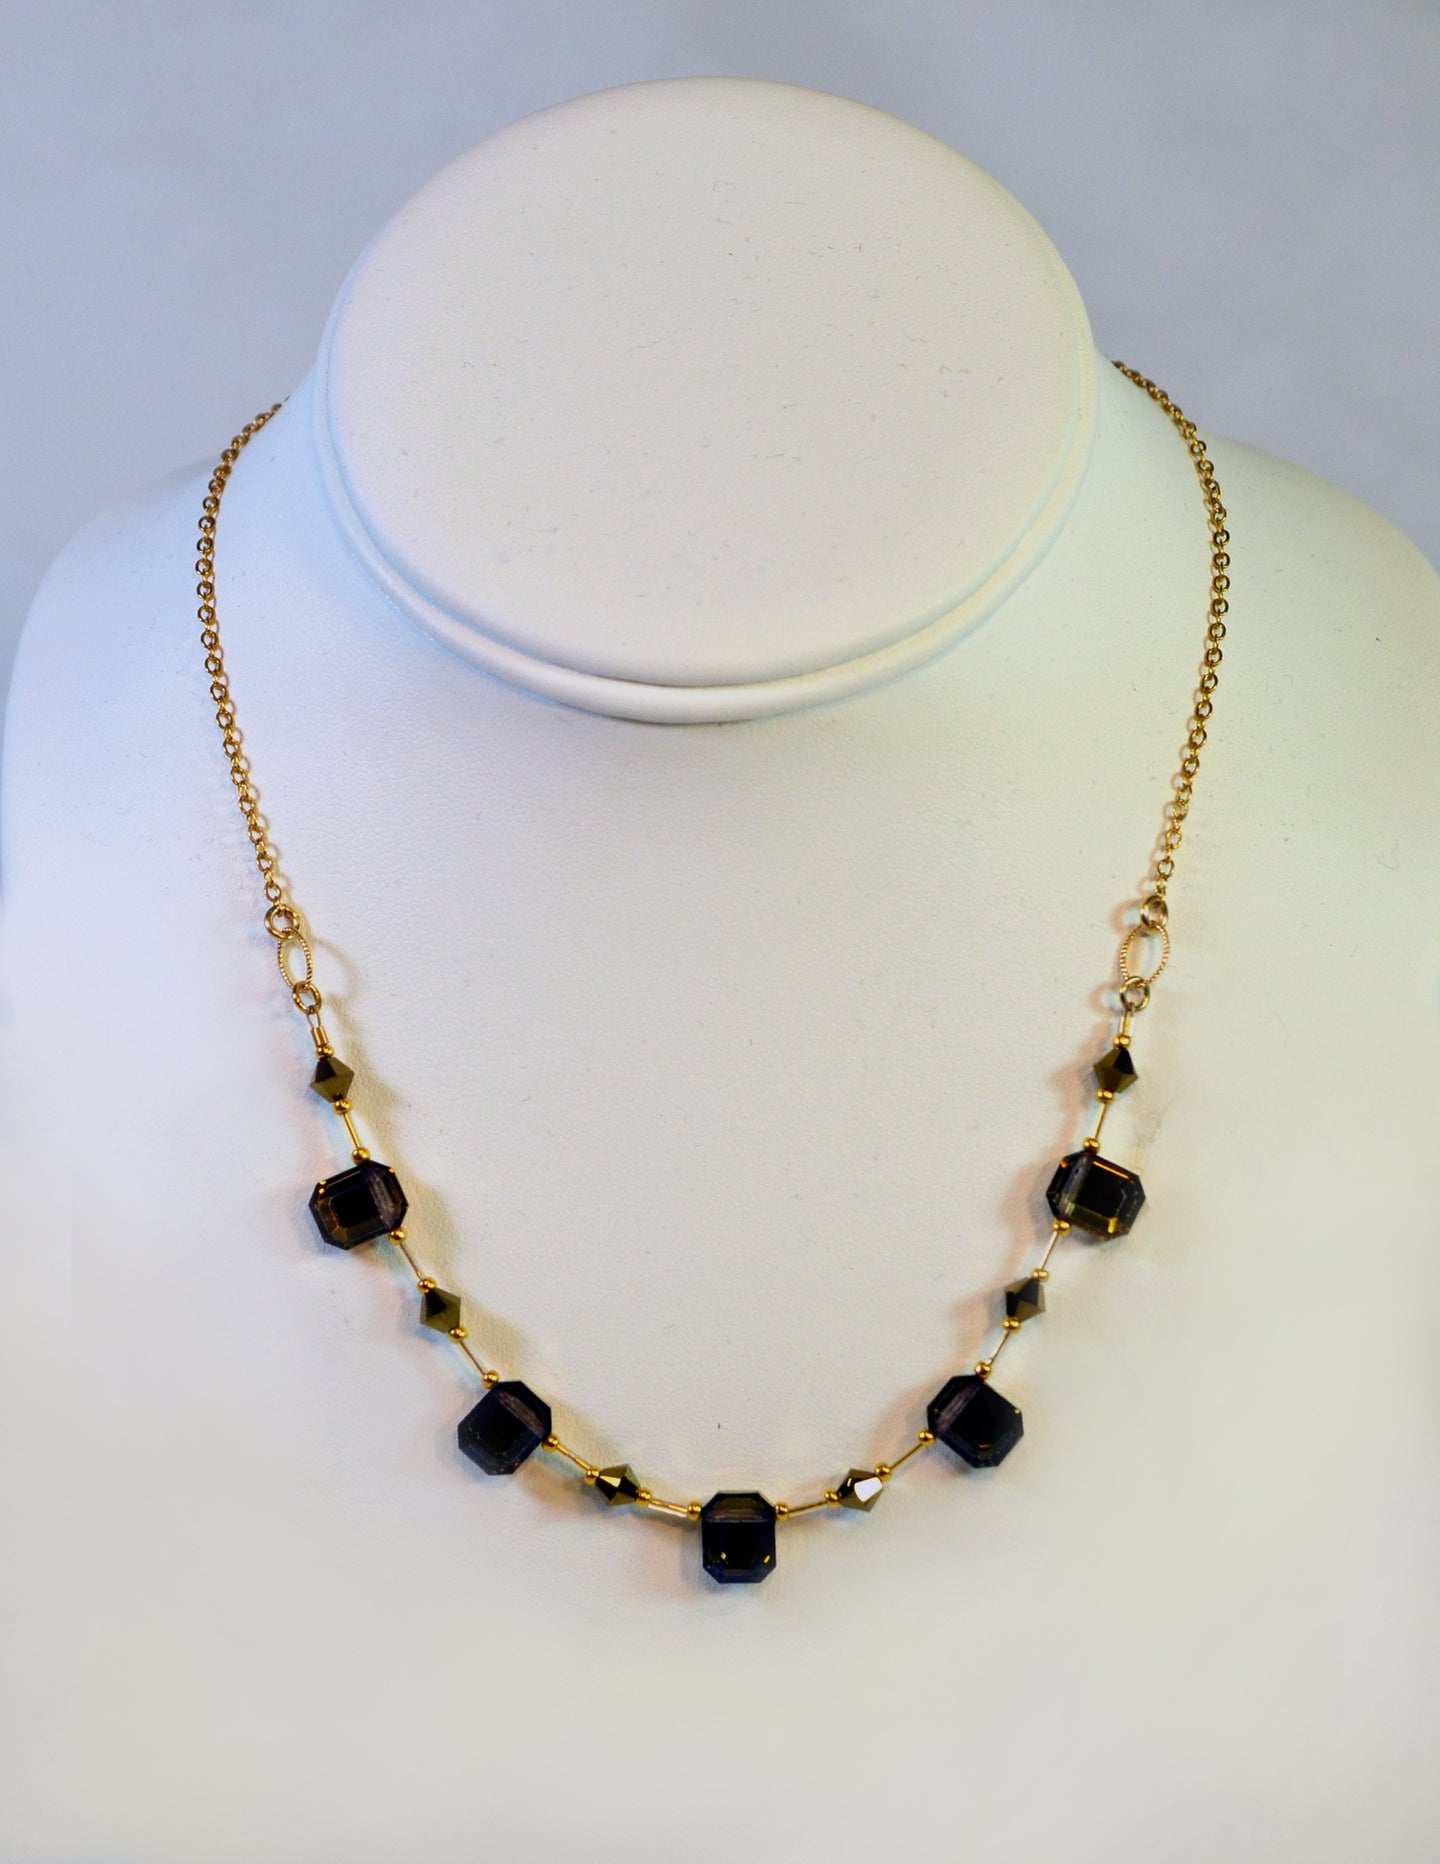 Necklace, NG-EC Medium Gold by Cynthia Bloom